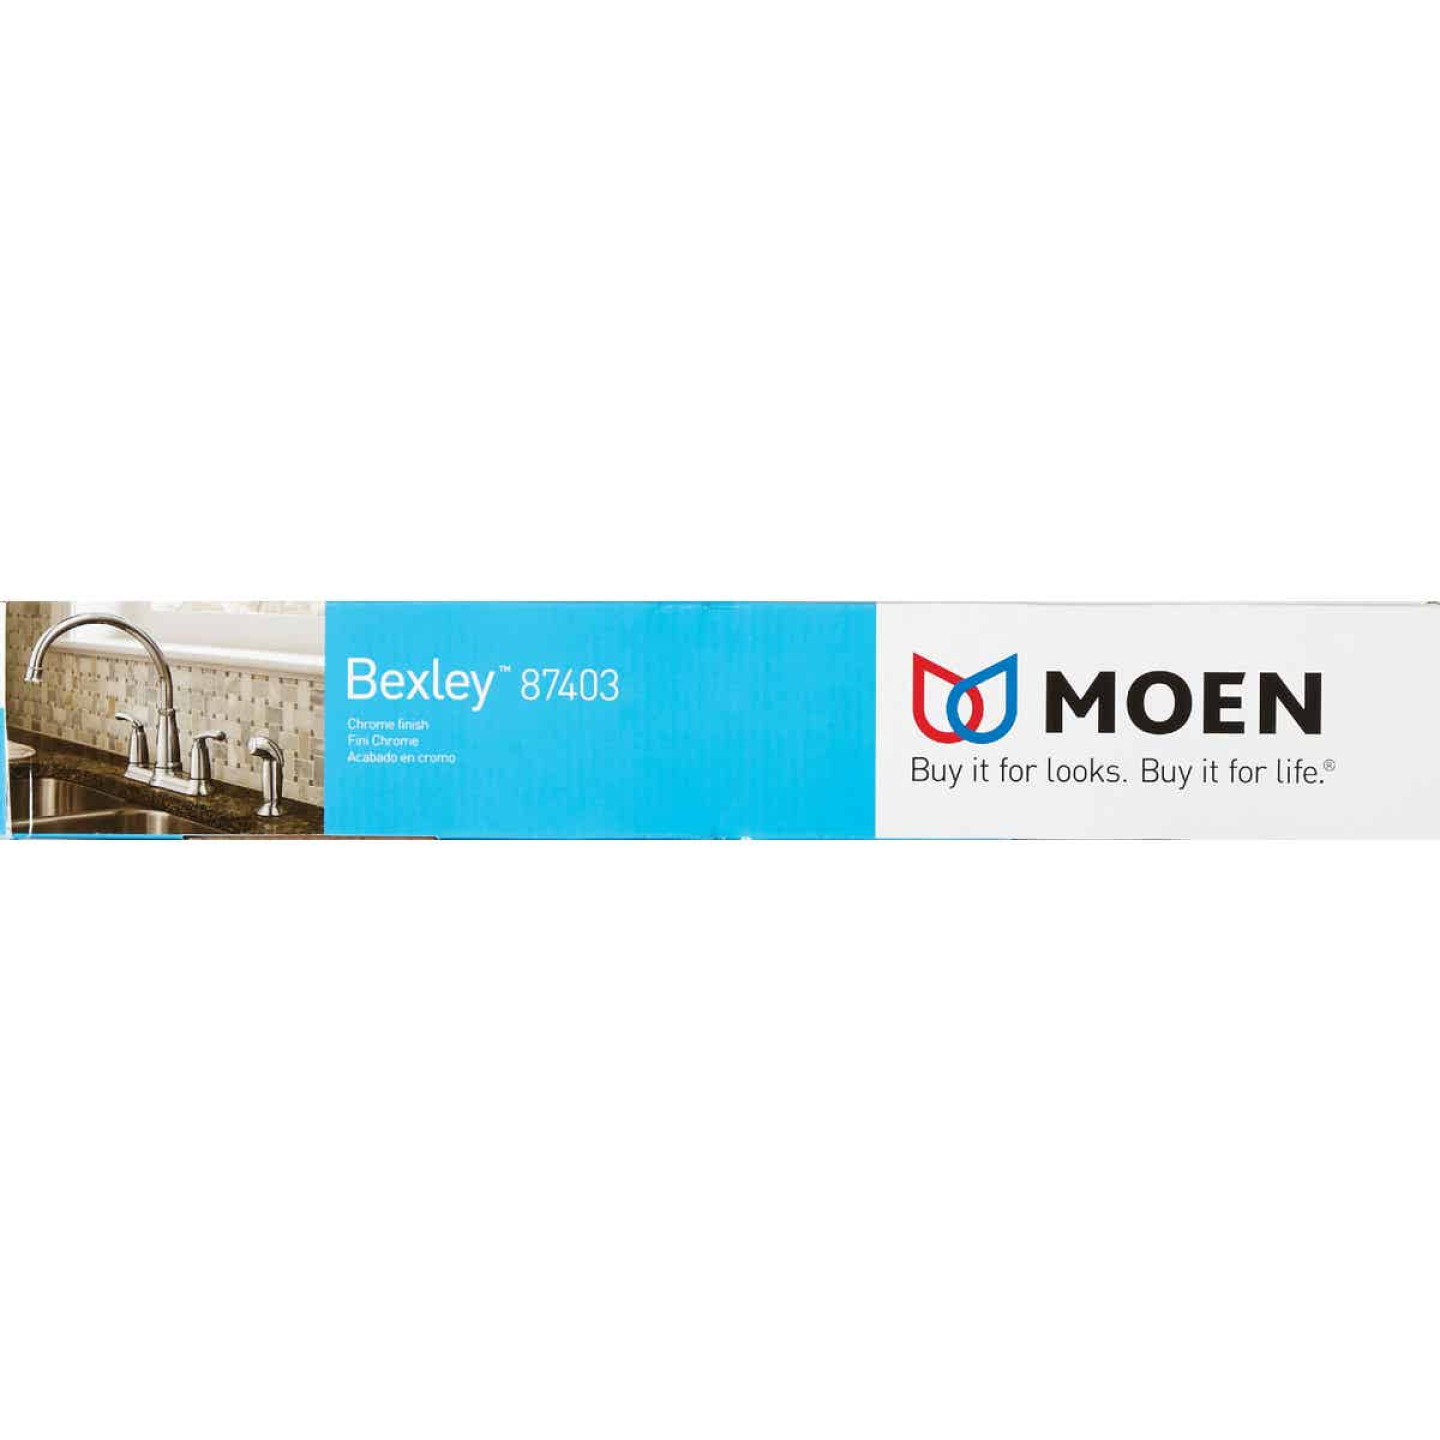 Moen Bexley Dual Handle Lever Kitchen Faucet with Side Spray, Chrome Image 3